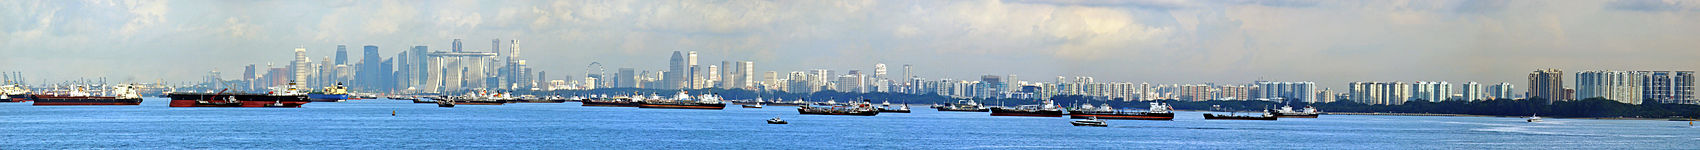 https://upload.wikimedia.org/wikipedia/commons/thumb/a/ac/Panoramic_view_of_the_Central_Business_District%2C_Singapore%2C_and_ships_-_20100712.jpg/1700px-Panoramic_view_of_the_Central_Business_District%2C_Singapore%2C_and_ships_-_20100712.jpg